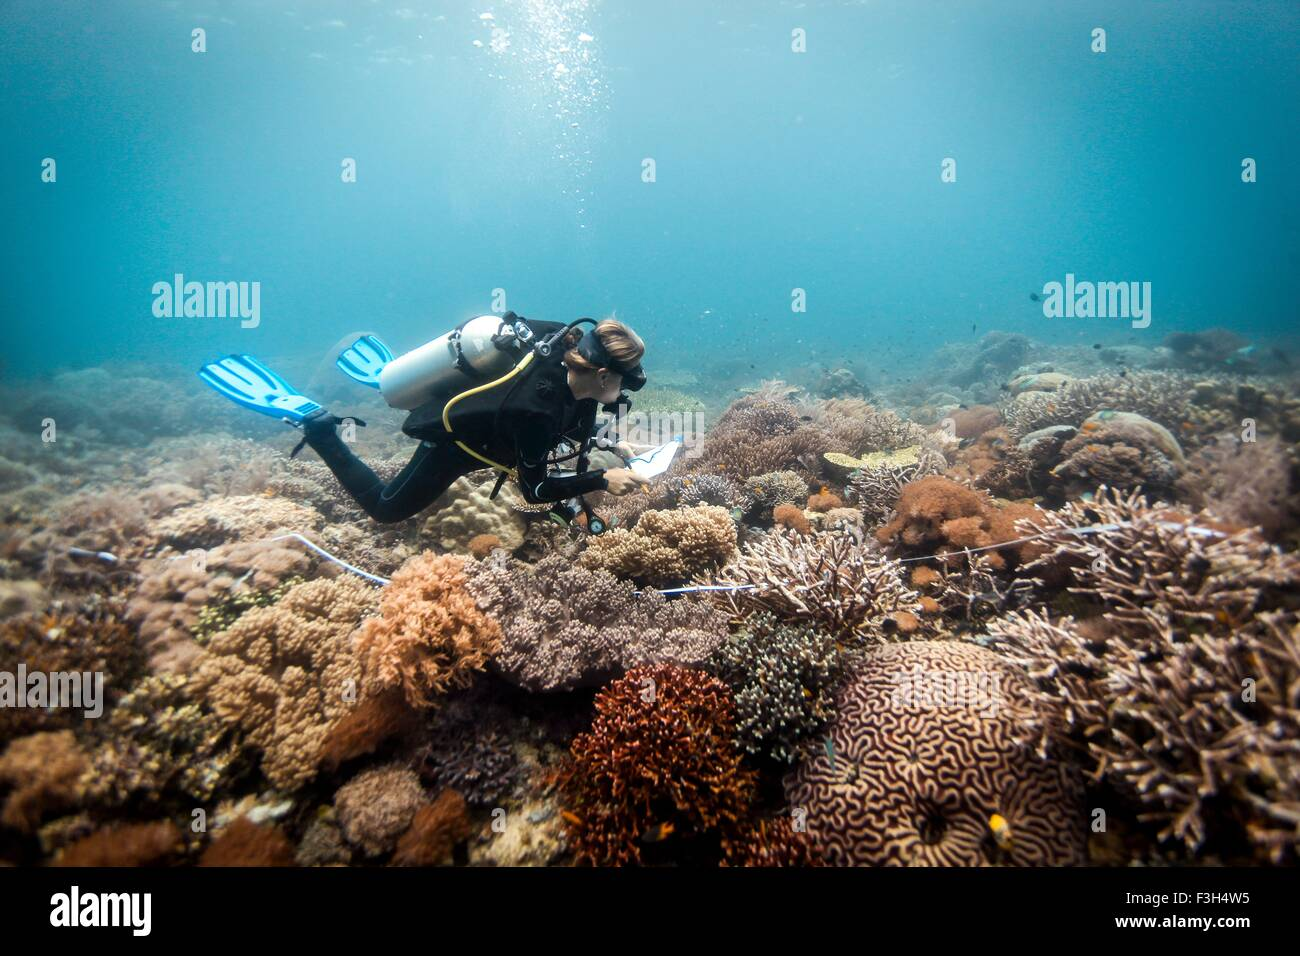 A scuba diver conducts a scientific survey on a coral reef, Raja Ampat, West Papua, Indonesia - Stock Image